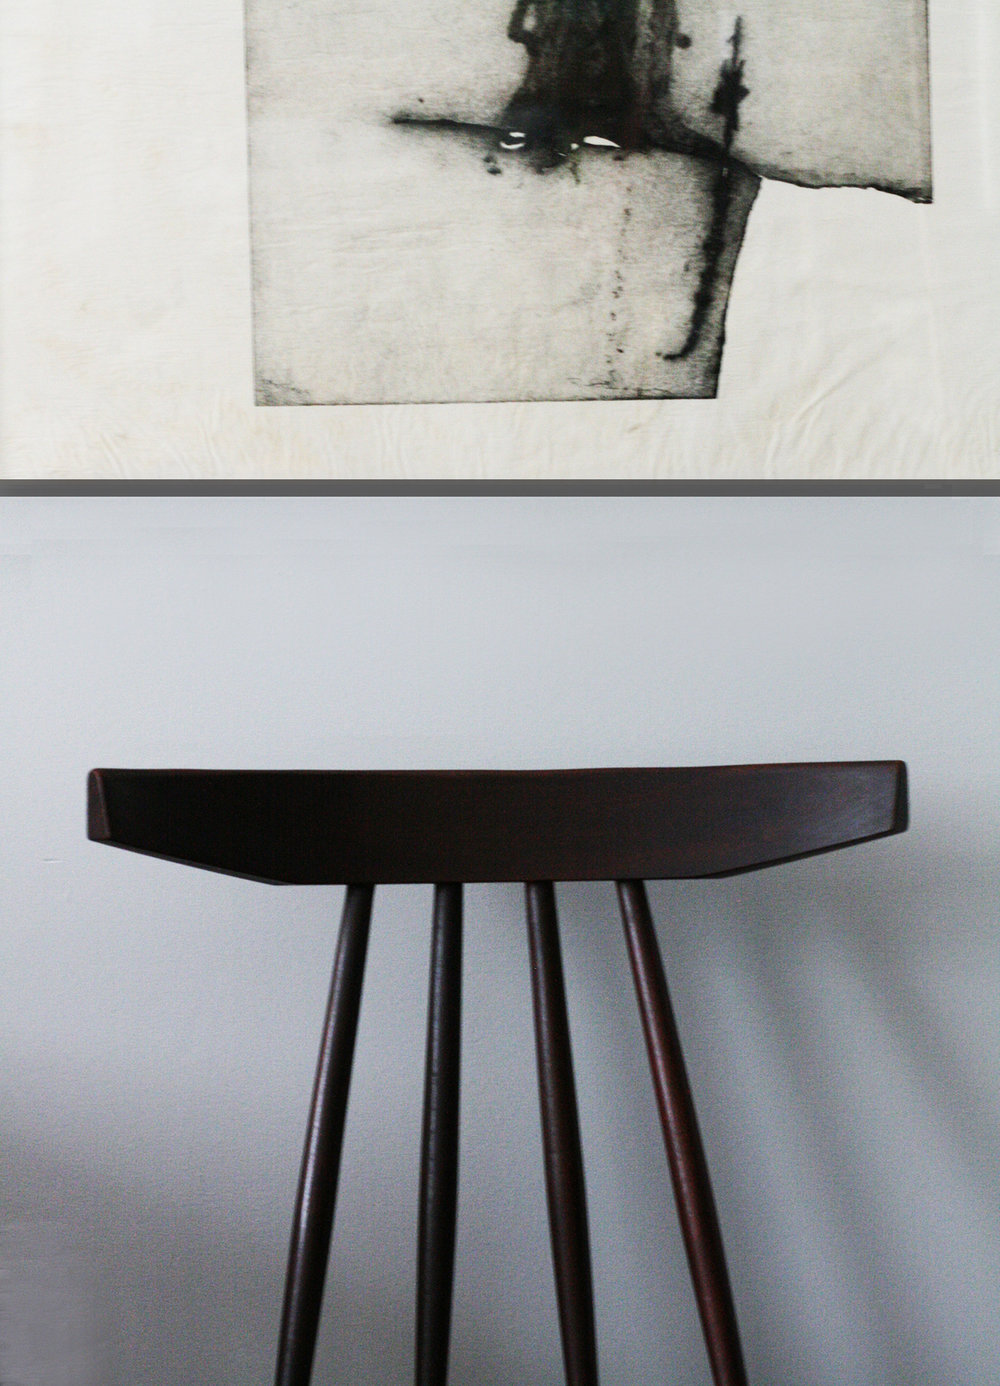 Vintage Danish chair and litho